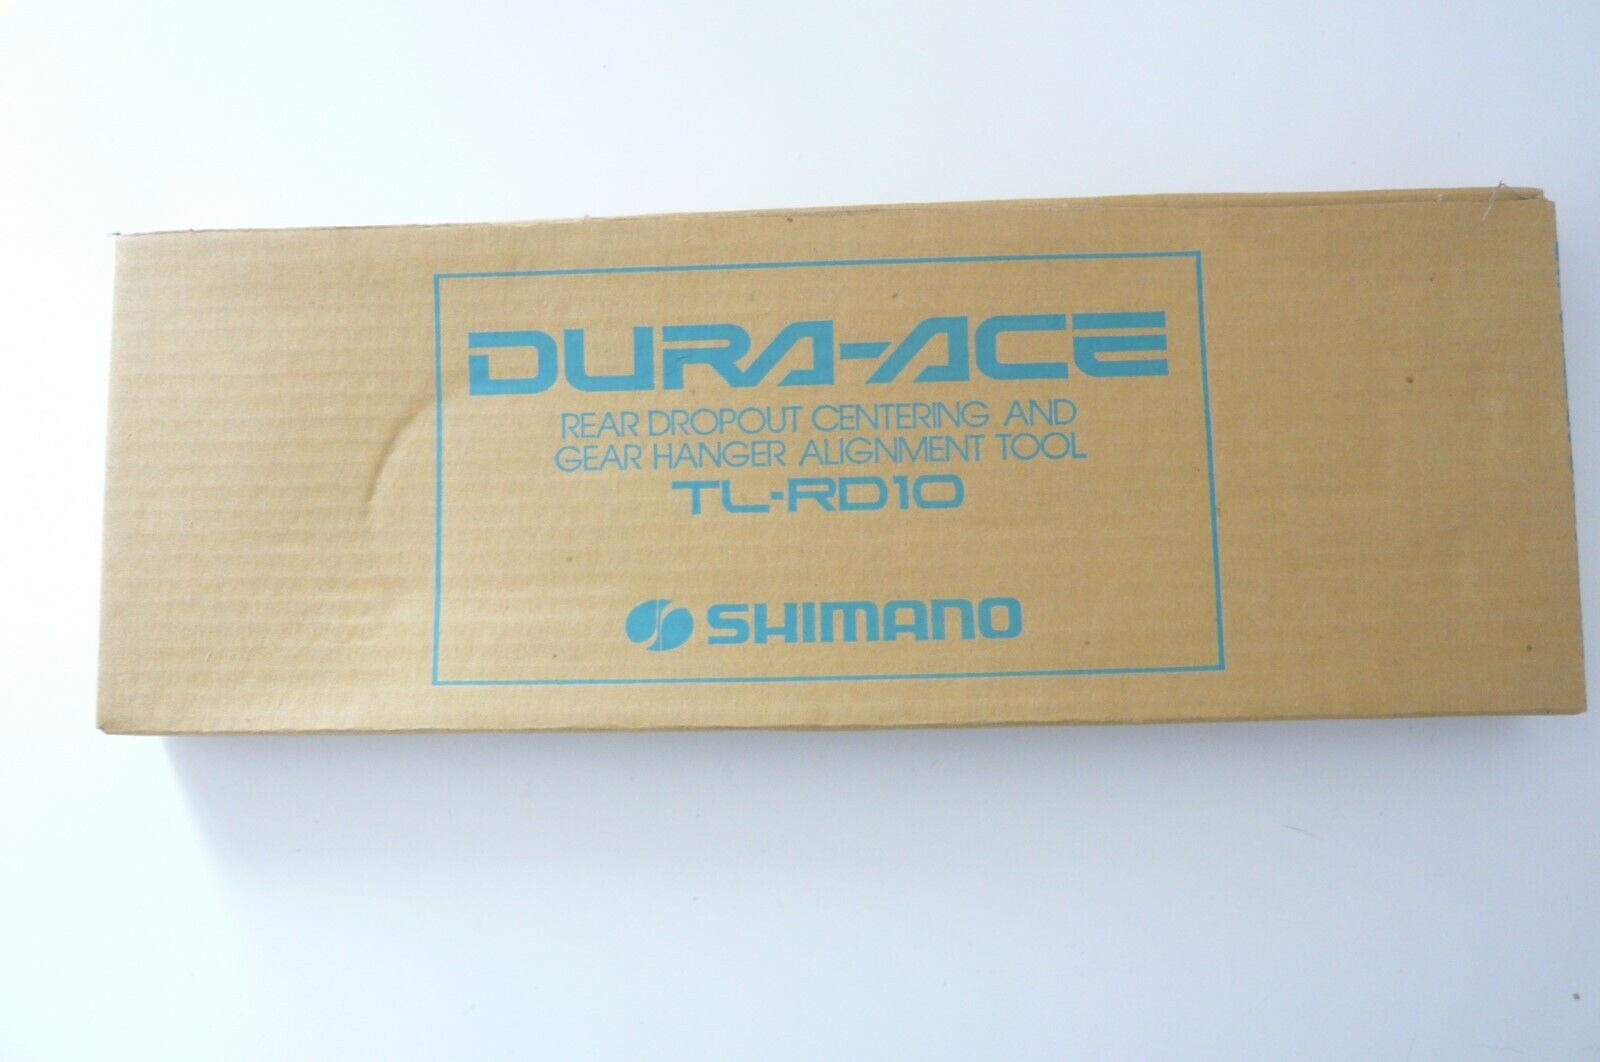 Shimano TL-RD 10 Dura Ace rear dropout alignement tools